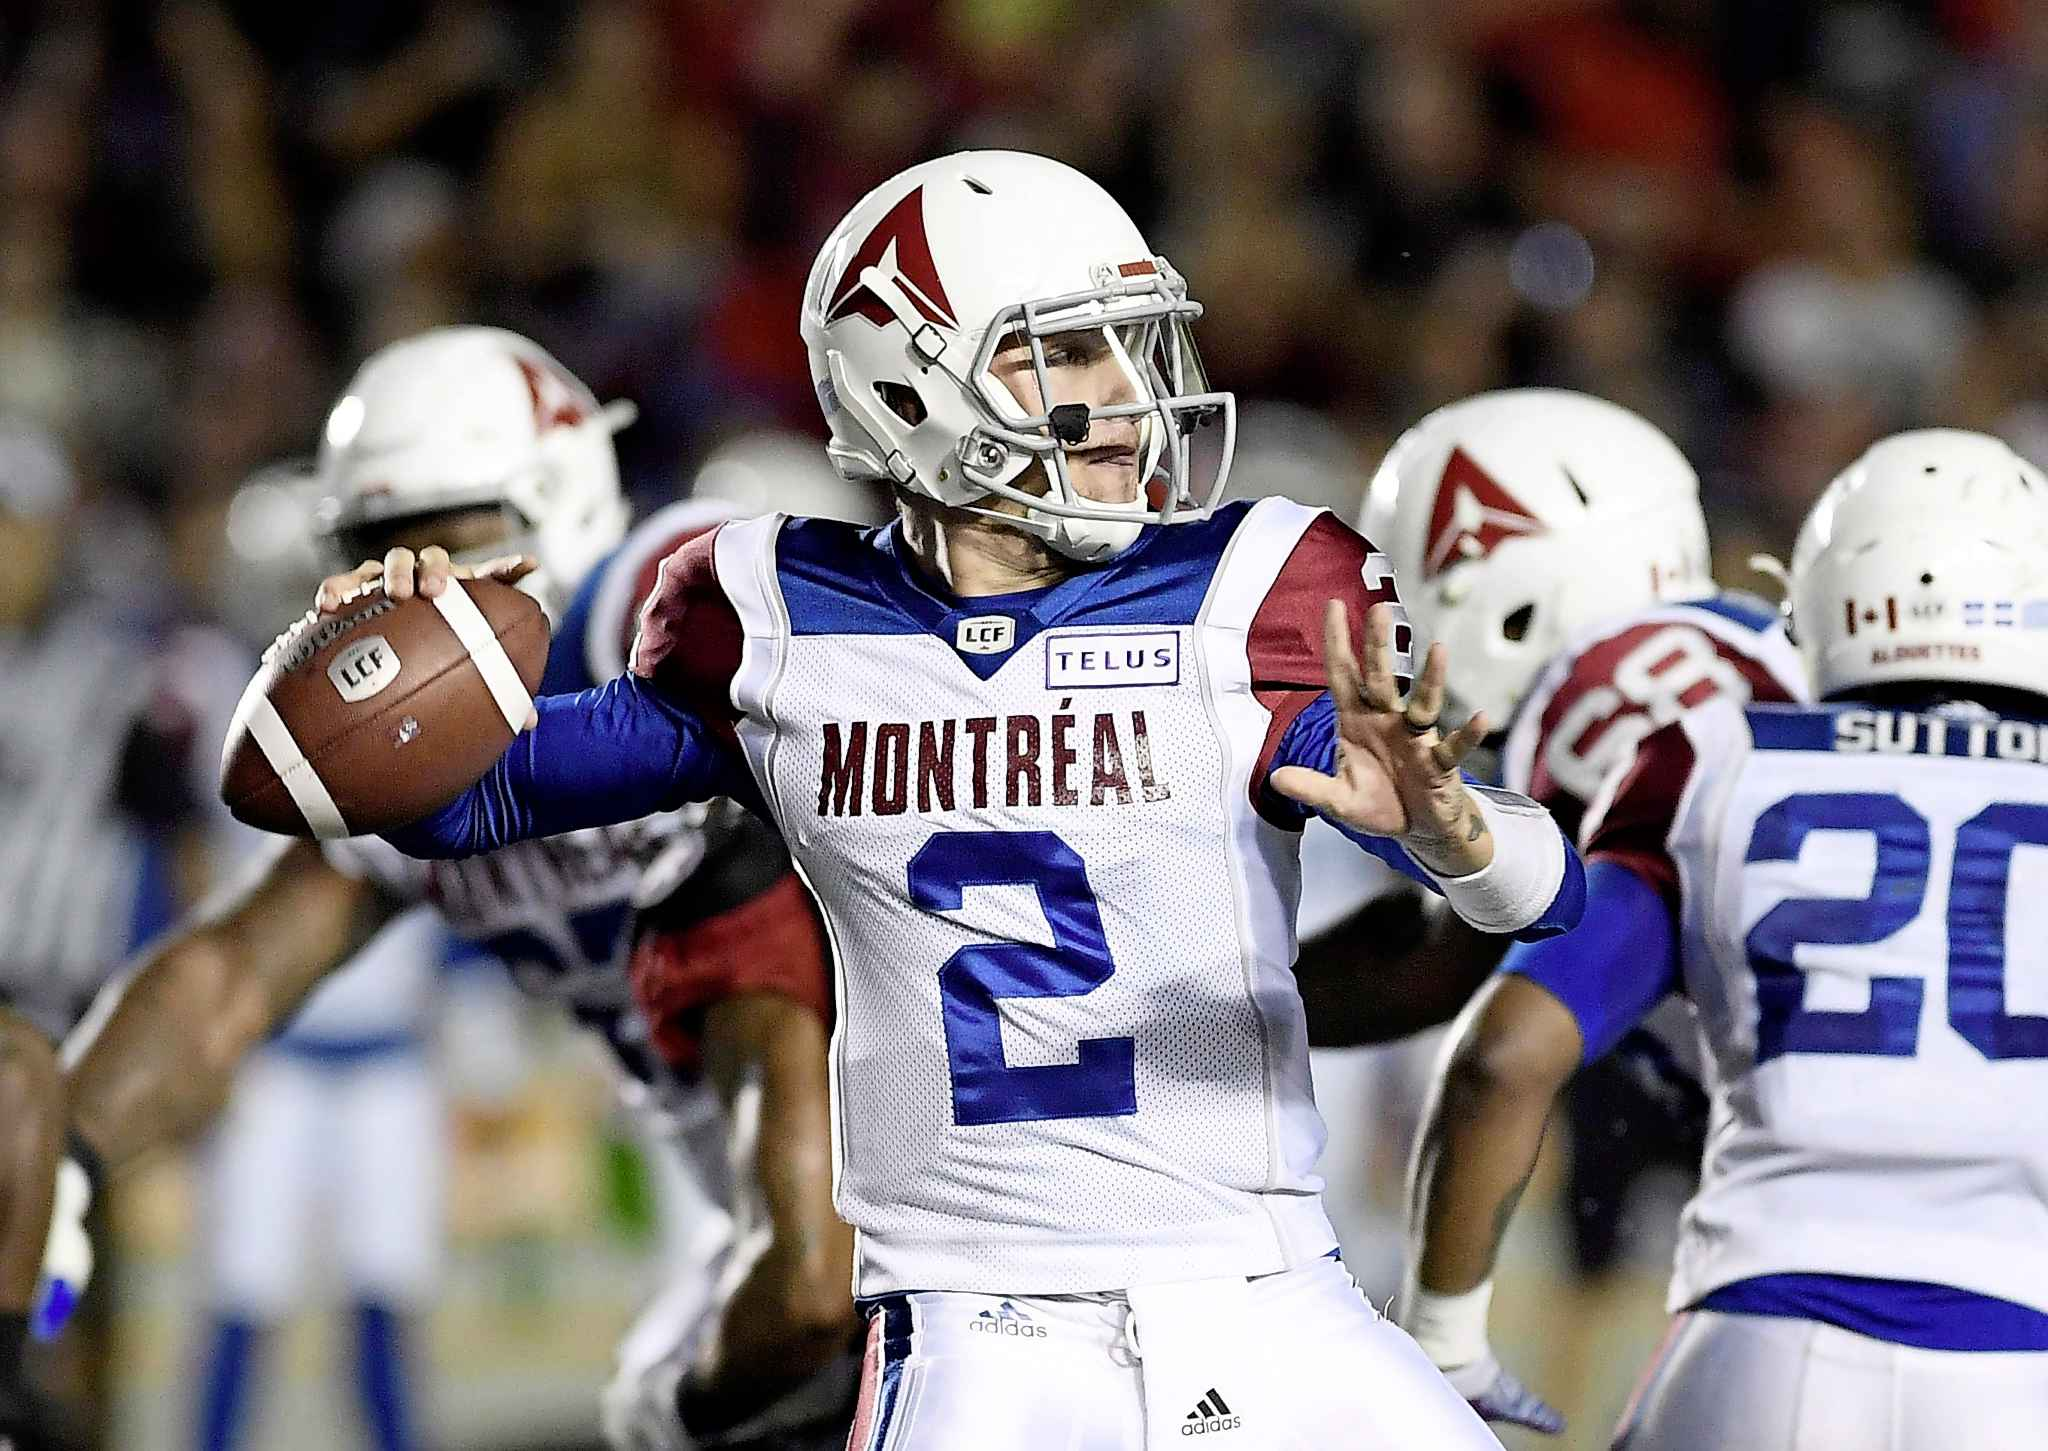 Montreal Alouettes quarterback Johnny Manziel makes a pass from the pocket. His mobility will be something the Bombers defence will have to be aware of.